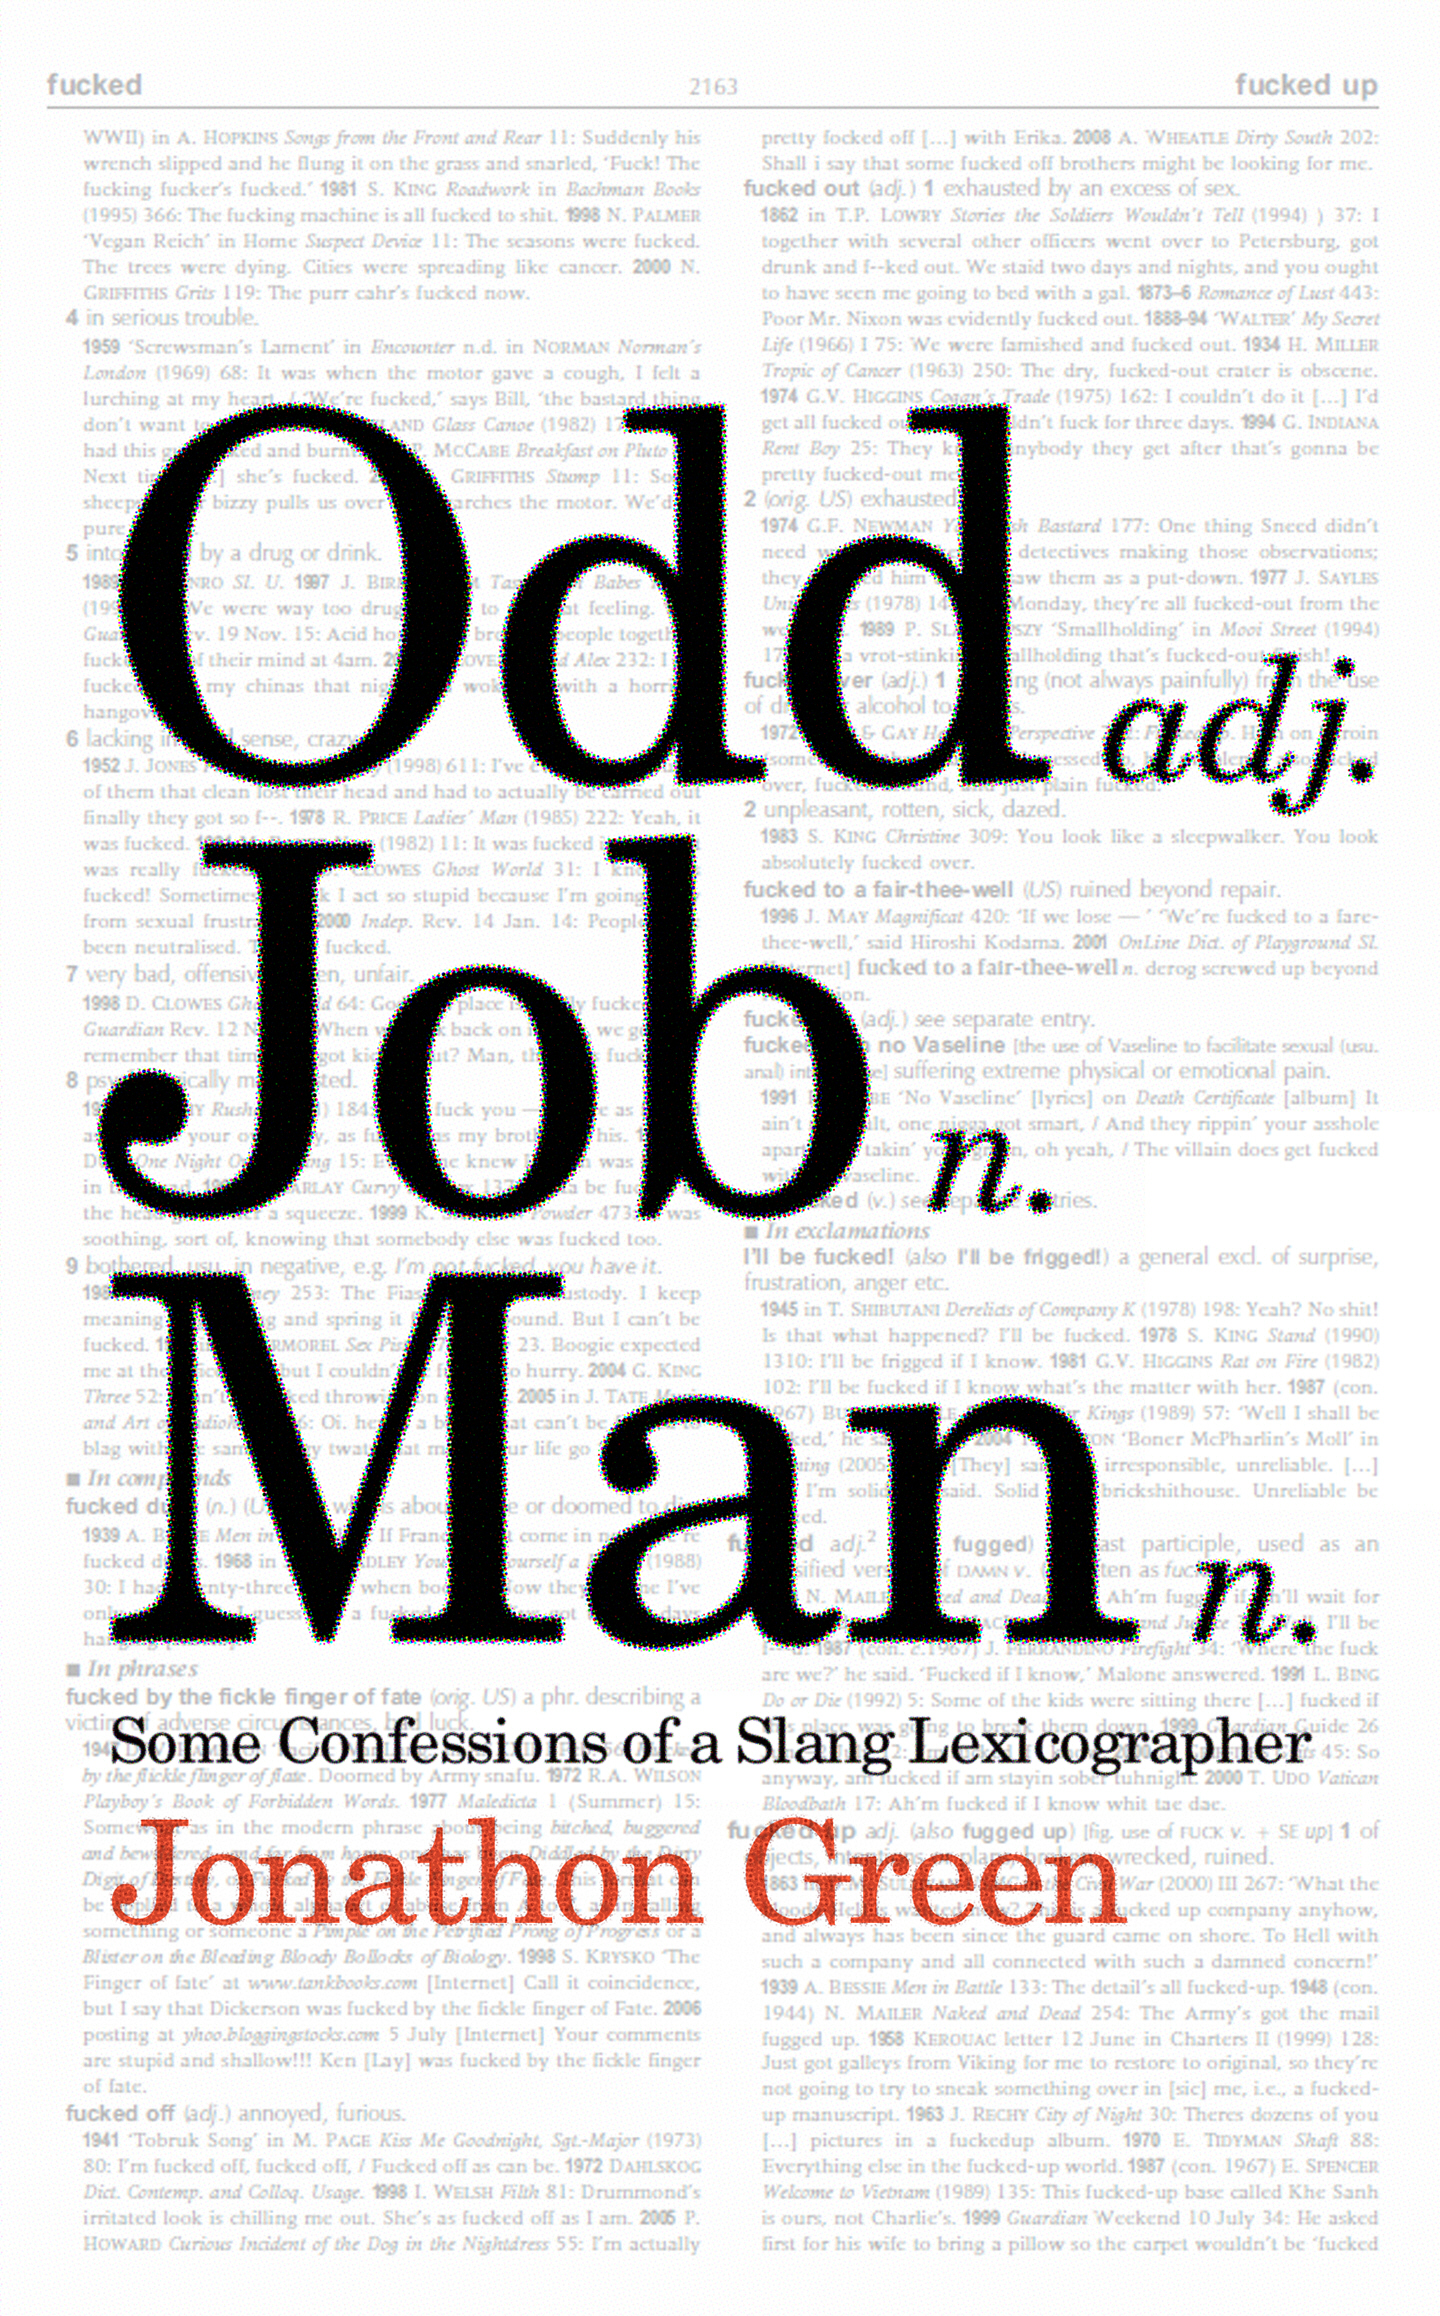 Odd Job Man Some Confessions of a Slang Lexicographer